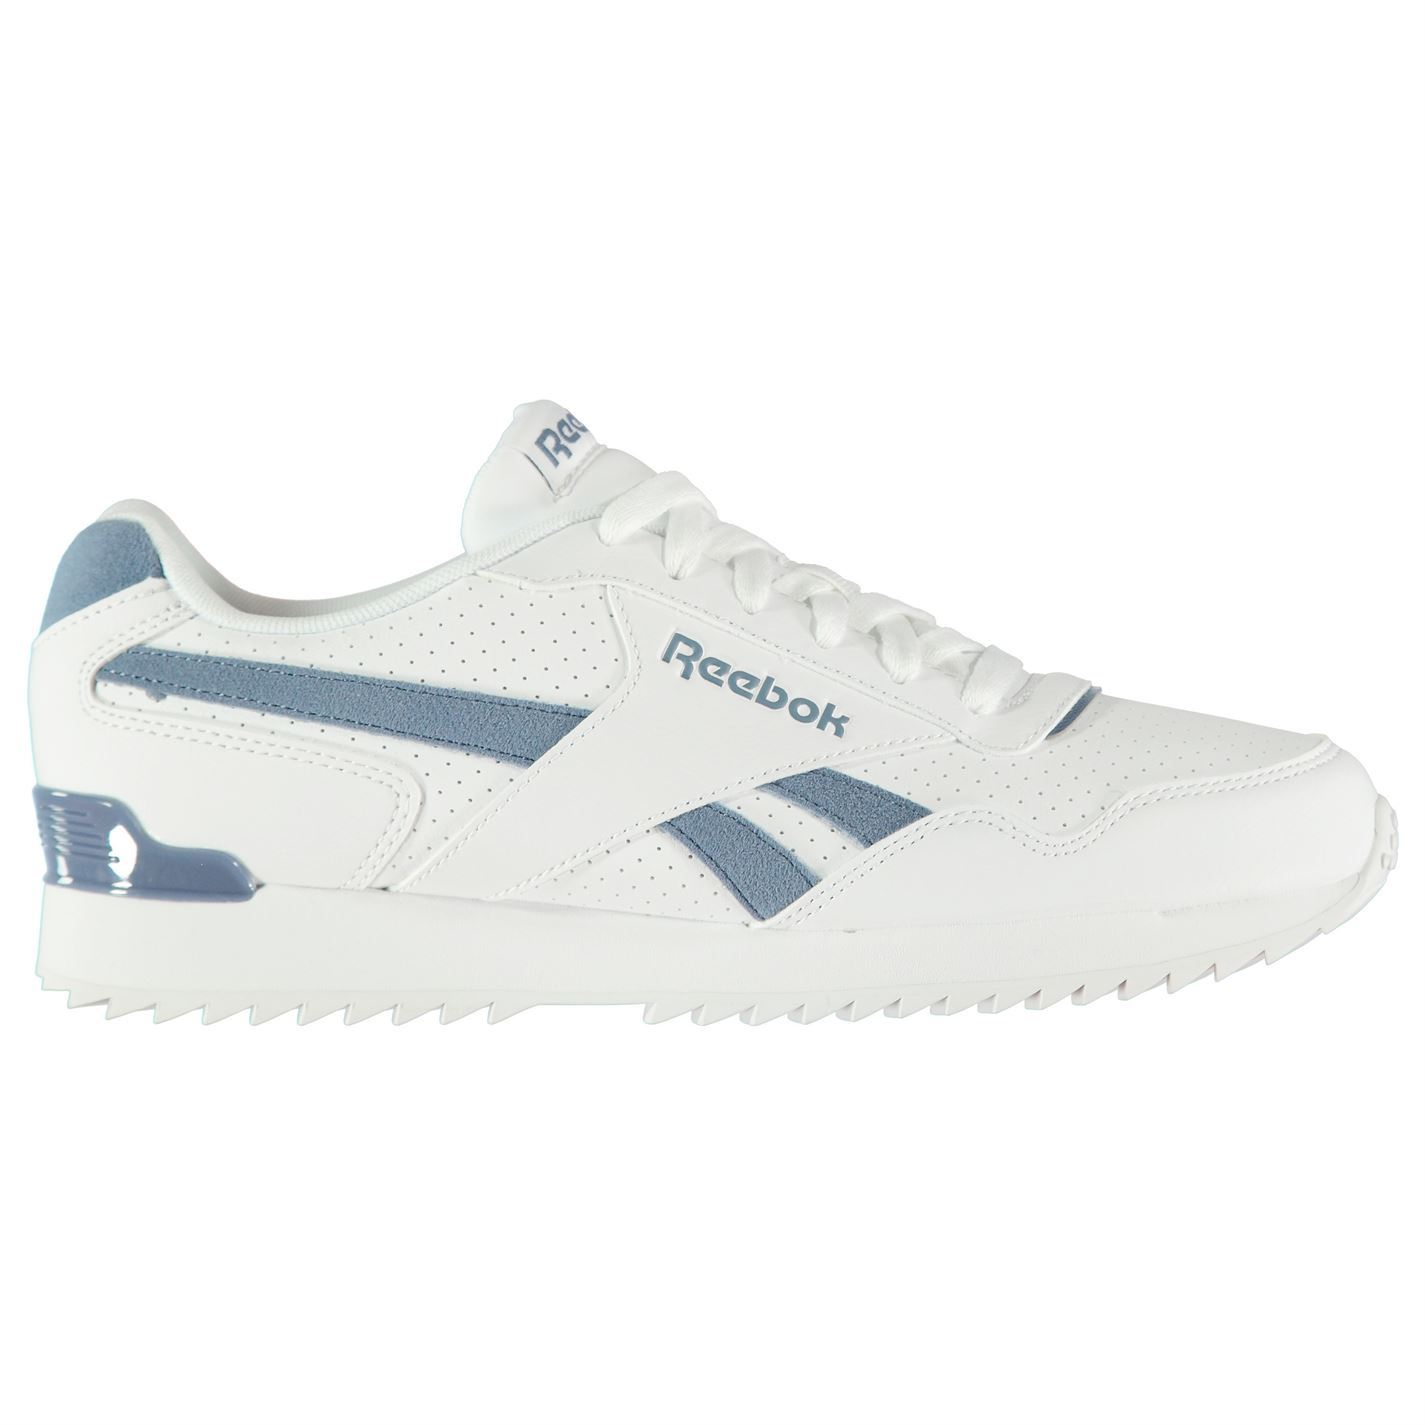 Reebok Royal Glide Ripple Clip Sneakers Fastened Mens Gents Runners Laces Fastened Sneakers Padded e83309